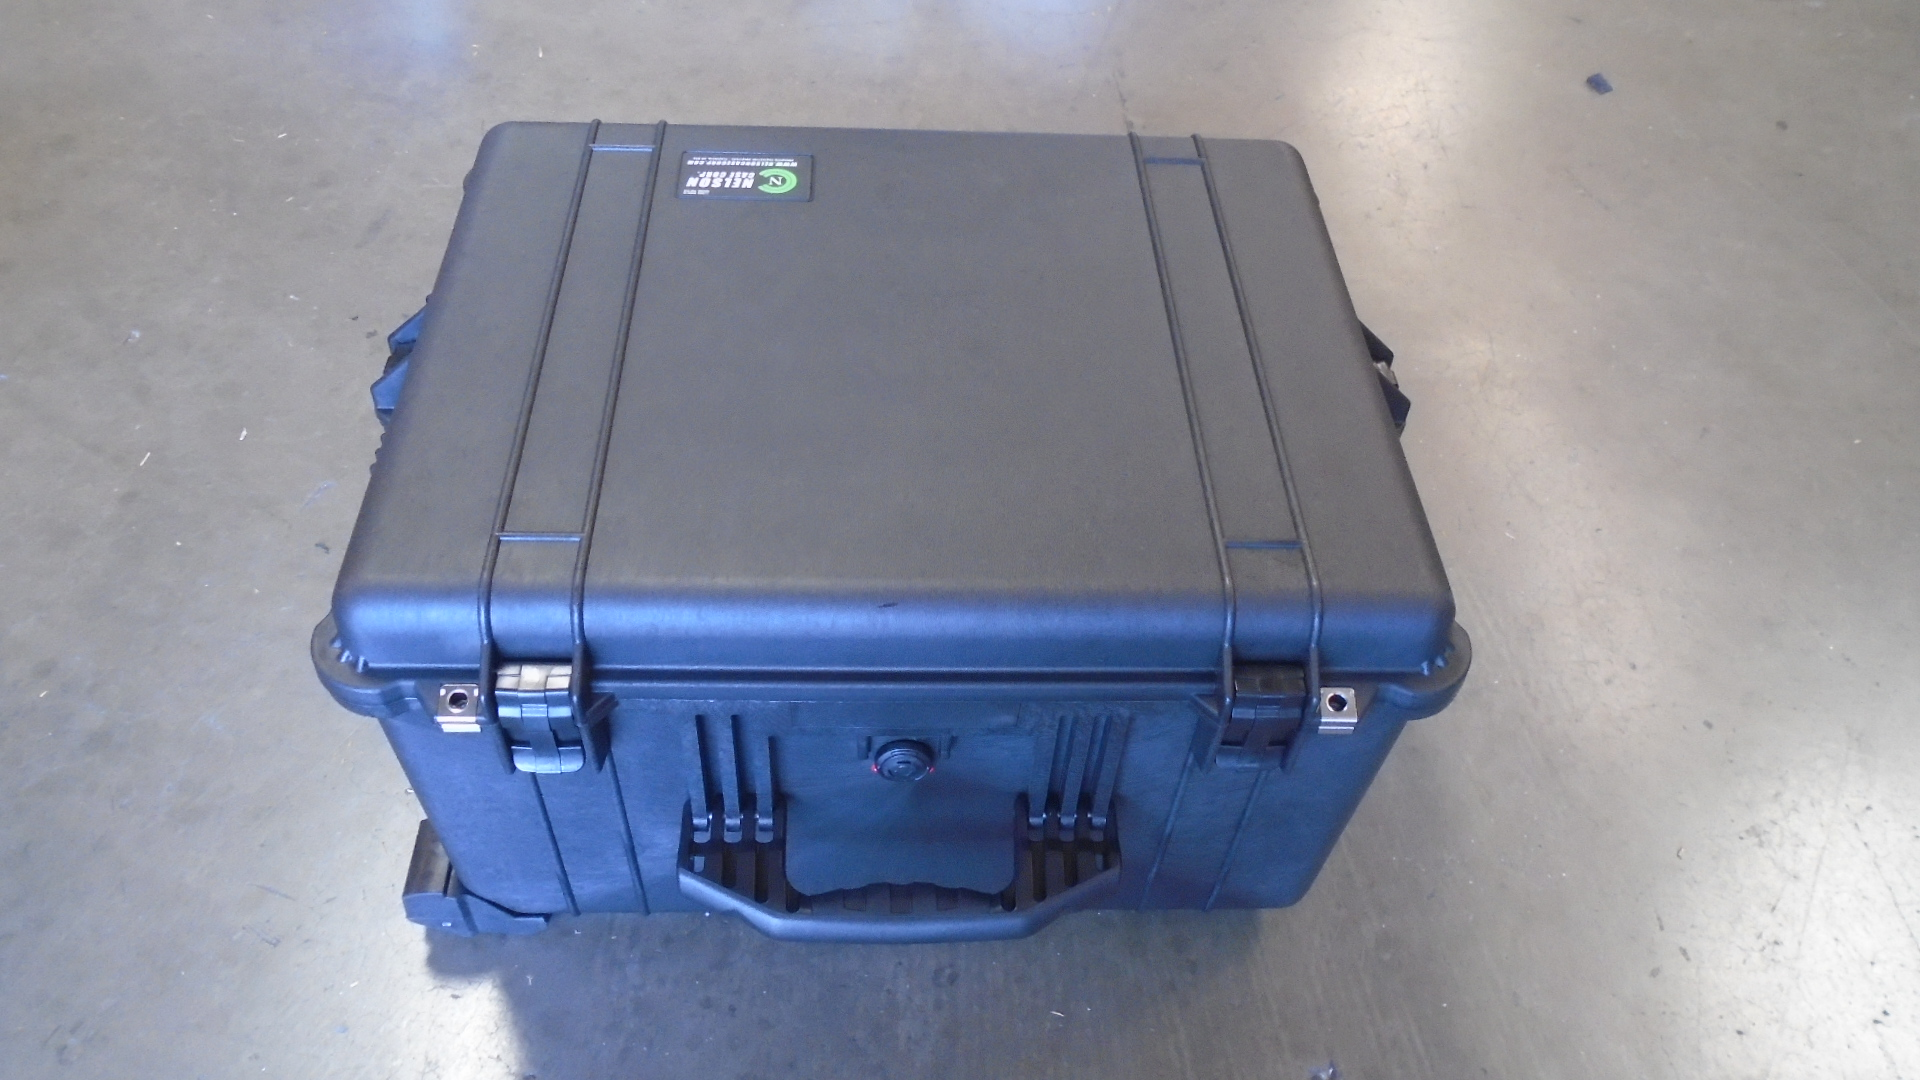 Print # 7639 - Pelican 1620 Retrofitted for Cradlepoint Access Point & Rack Kit By Nelson Case Corp